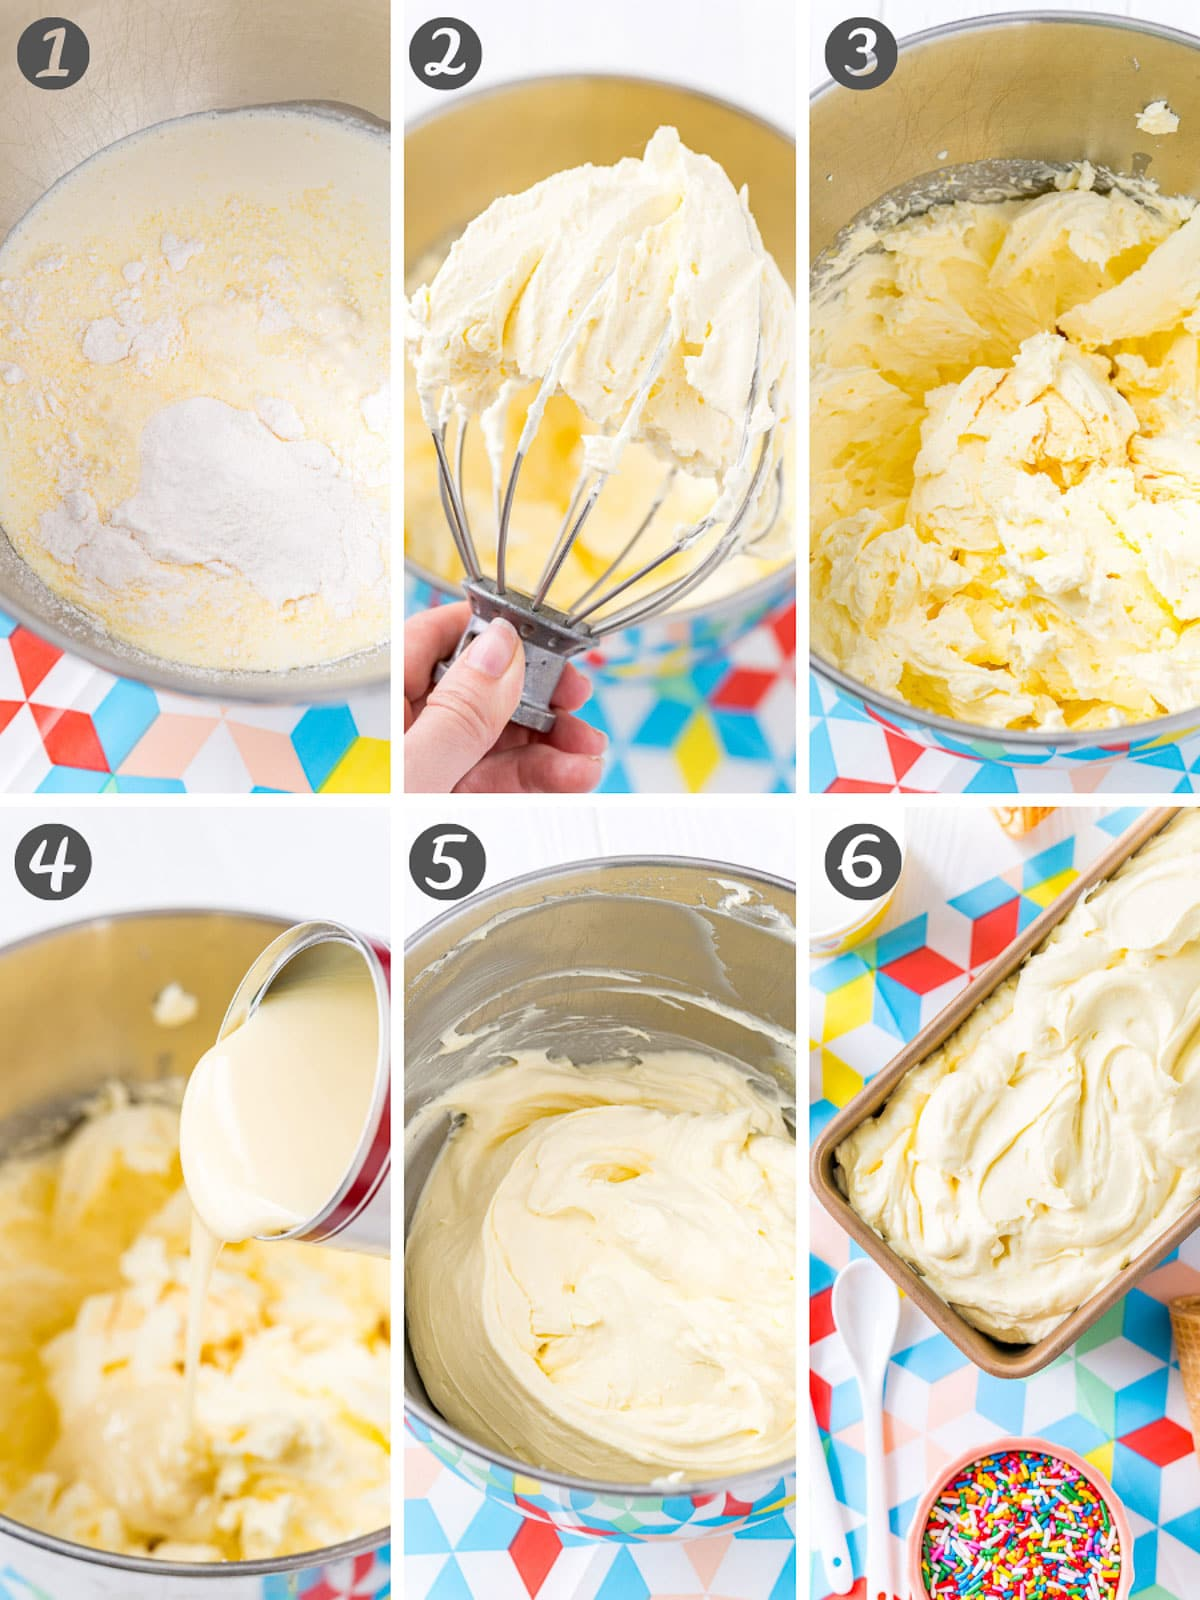 Collage of step-by-step photos for how to make vanilla ice cream without an ice cream machine.